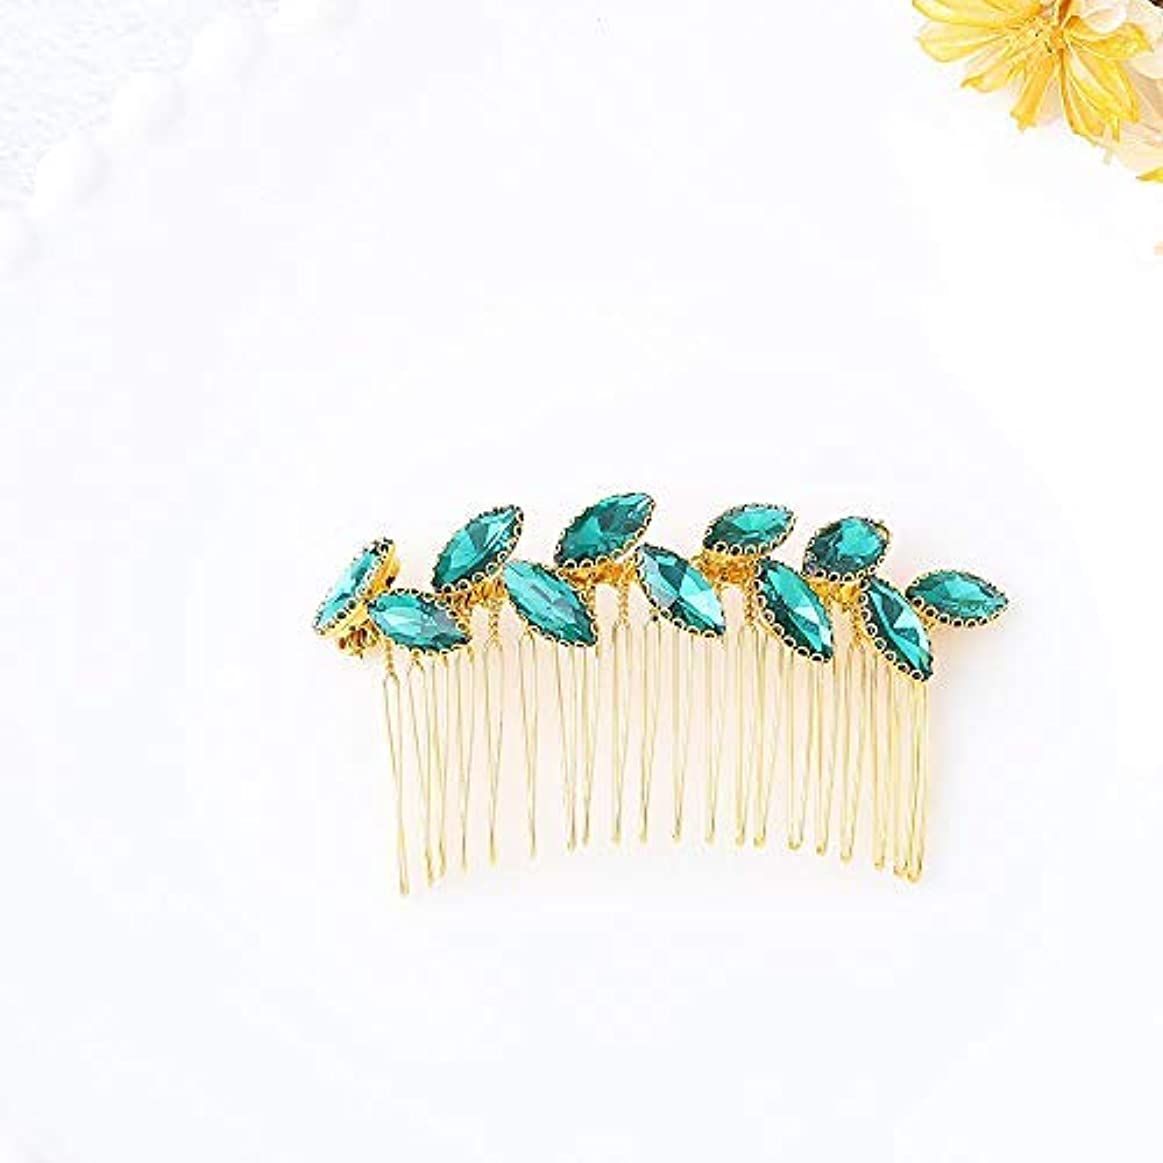 存在する苦難きょうだいJovono Bride Wedding Hair Comb Bridal Headpieces with Green Rhinestone for Women and Girls (Gold) [並行輸入品]